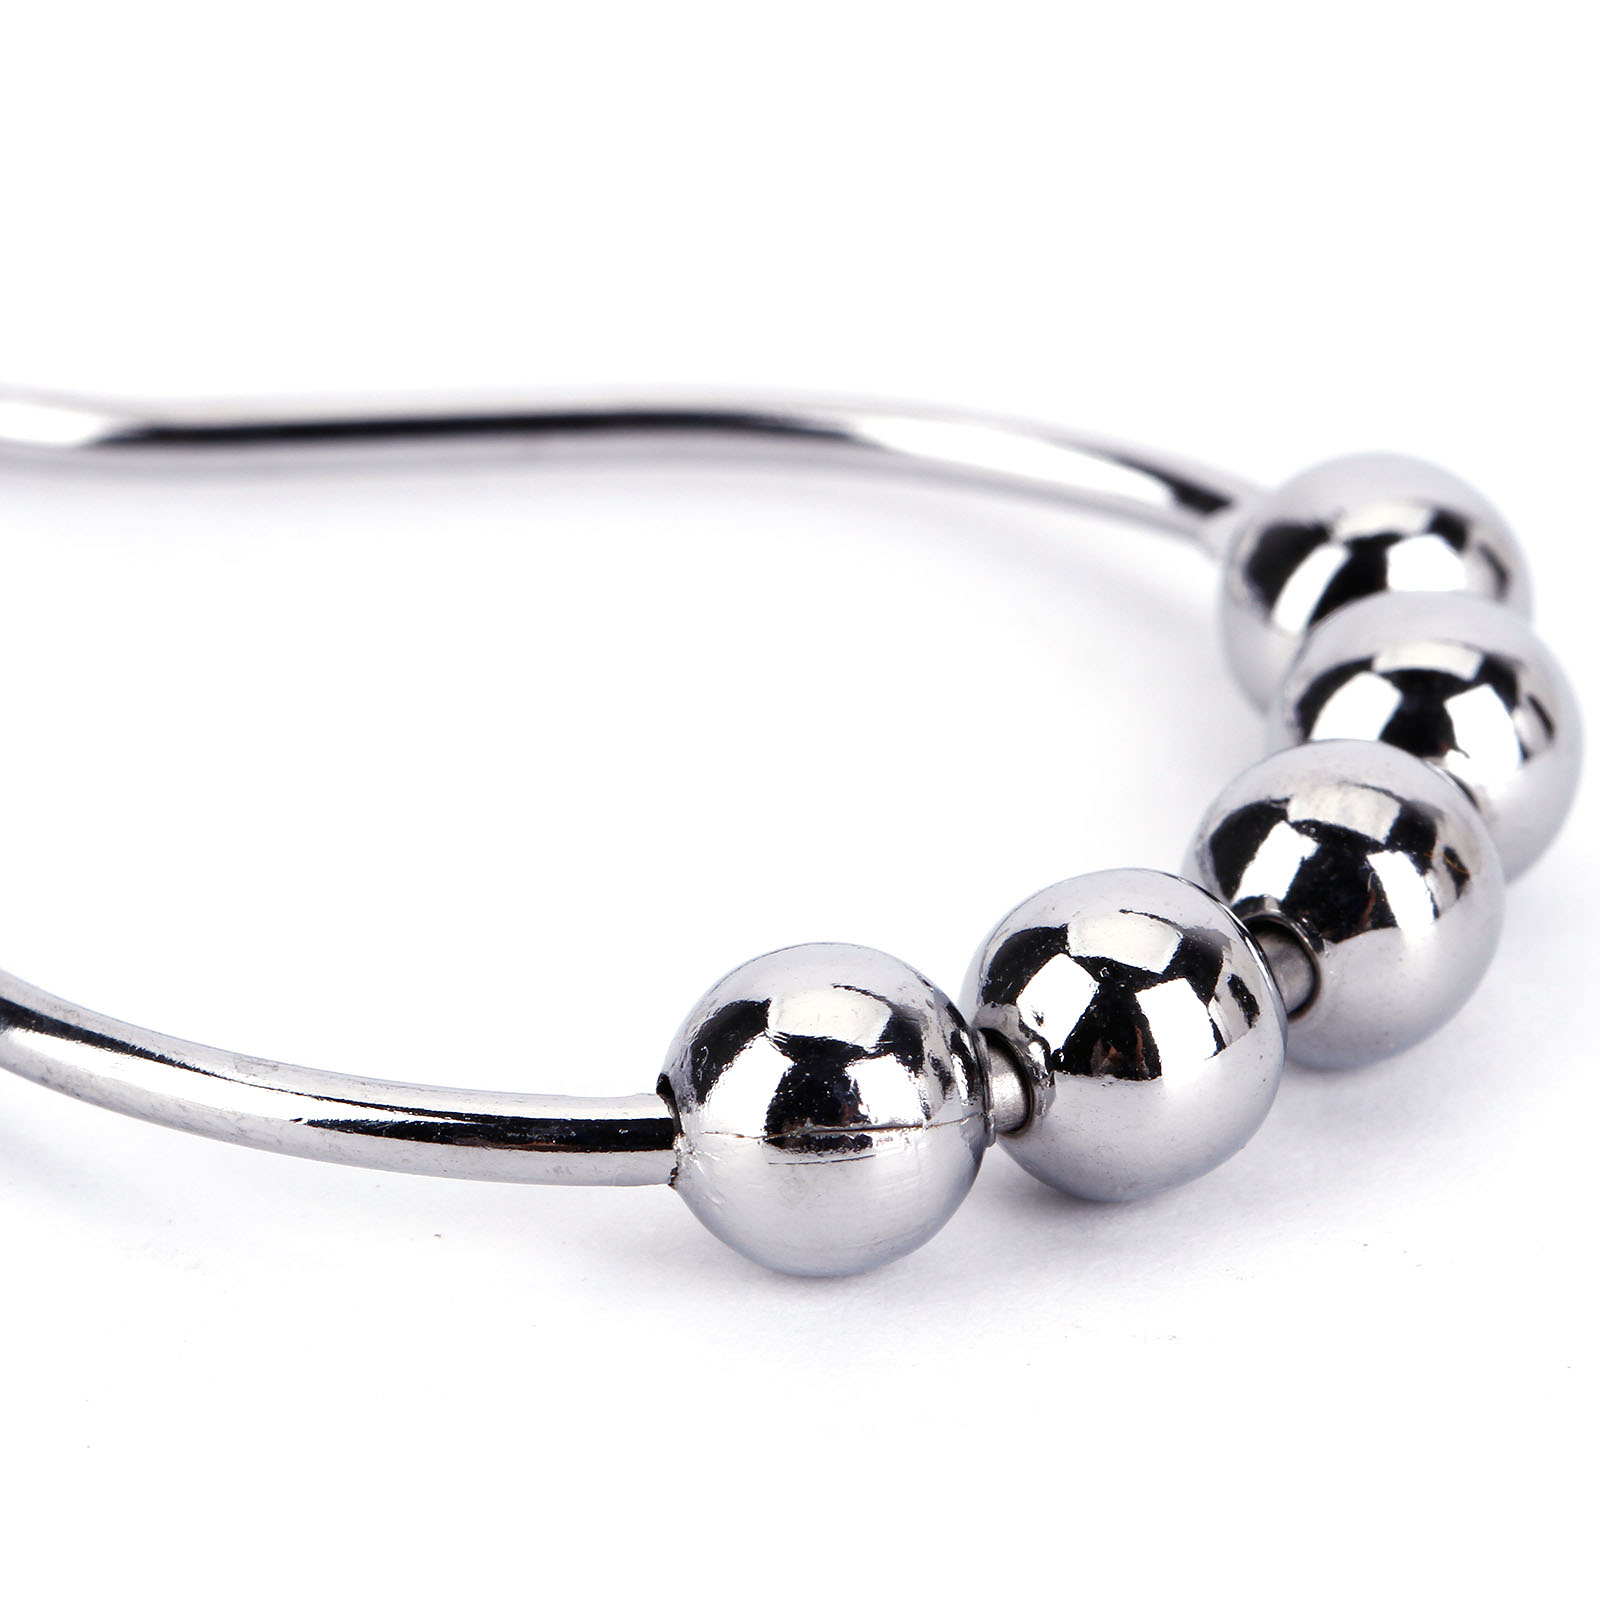 24pc Chrome Plated Ball Bead Shower Metal Curtain Rings Hooks Silver Ebay